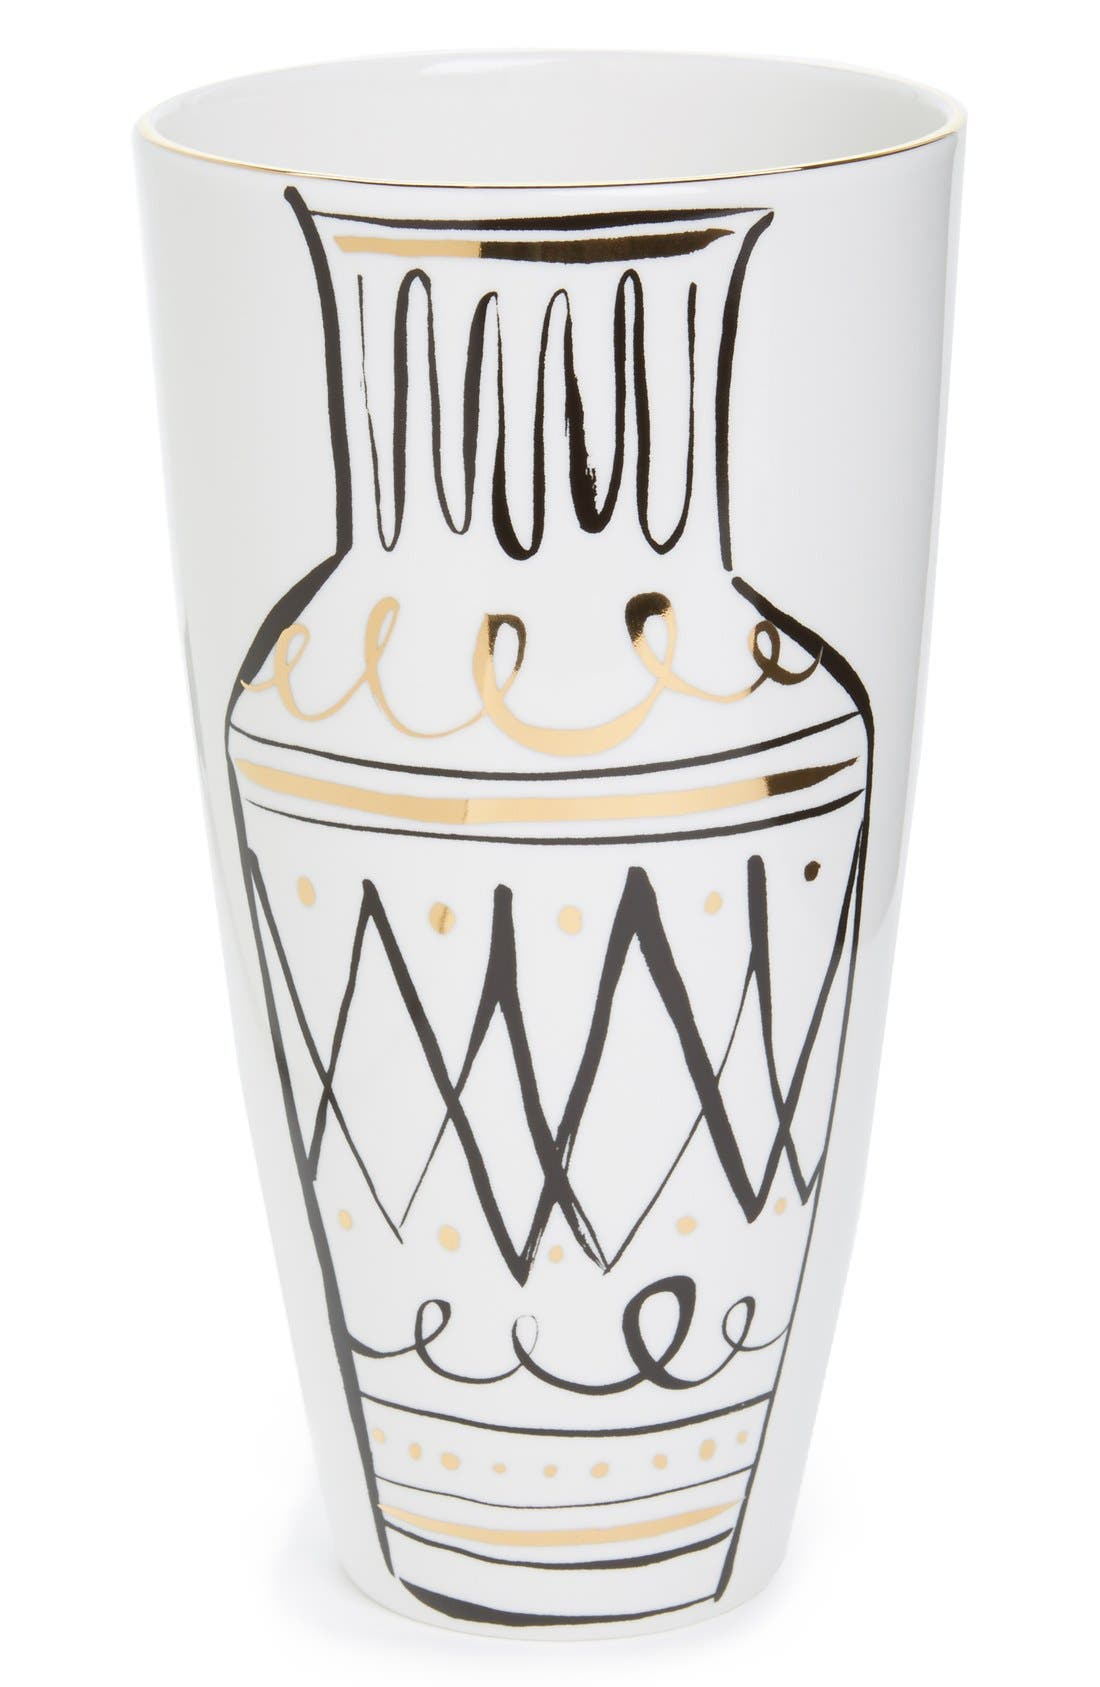 Main Image - kate spade new york 'chinoiserie' vase